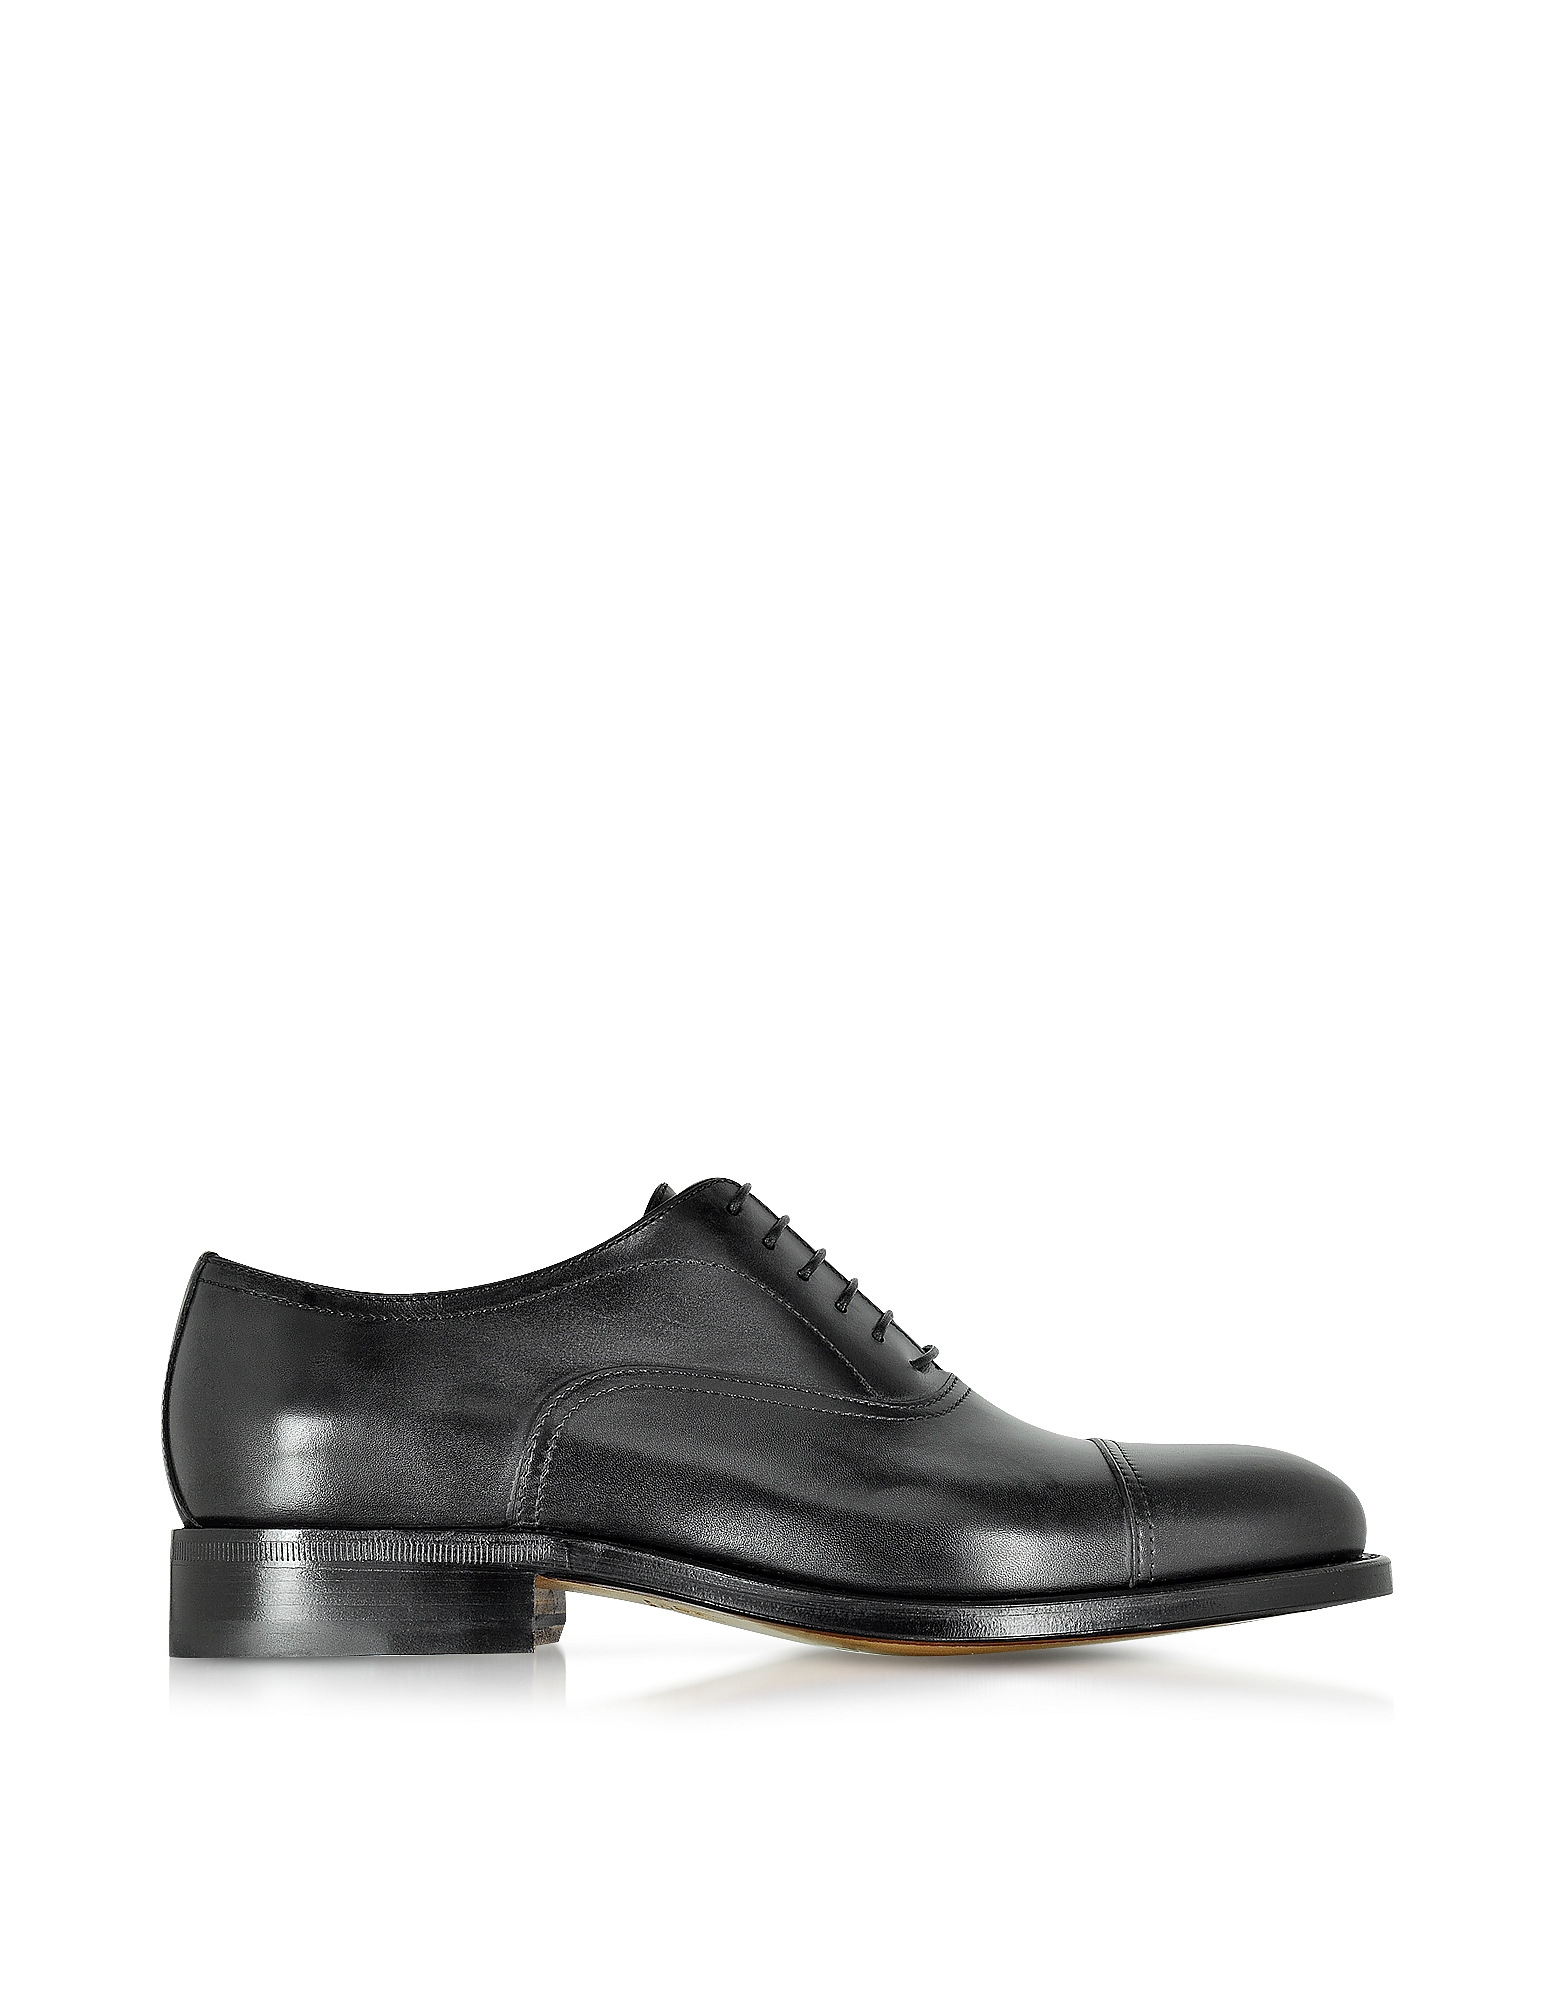 Moreschi Designer Shoes, Cardiff Black Genuine Leather Goodyear Oxford Shoe